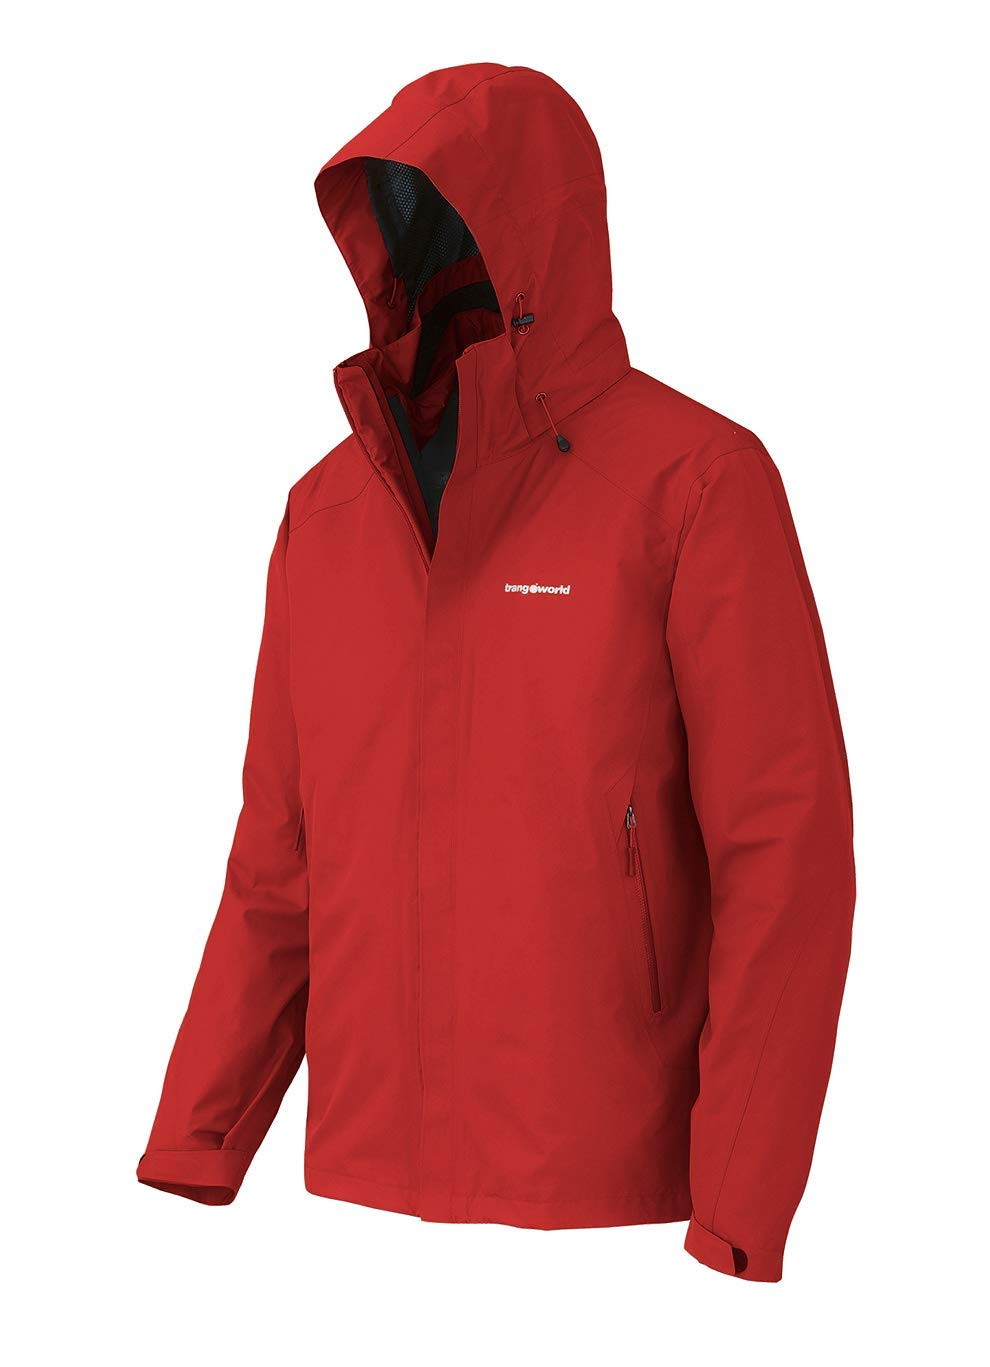 Amazon.com: Trangoworld Chaqueta Sieber COMPLET: Sports ...